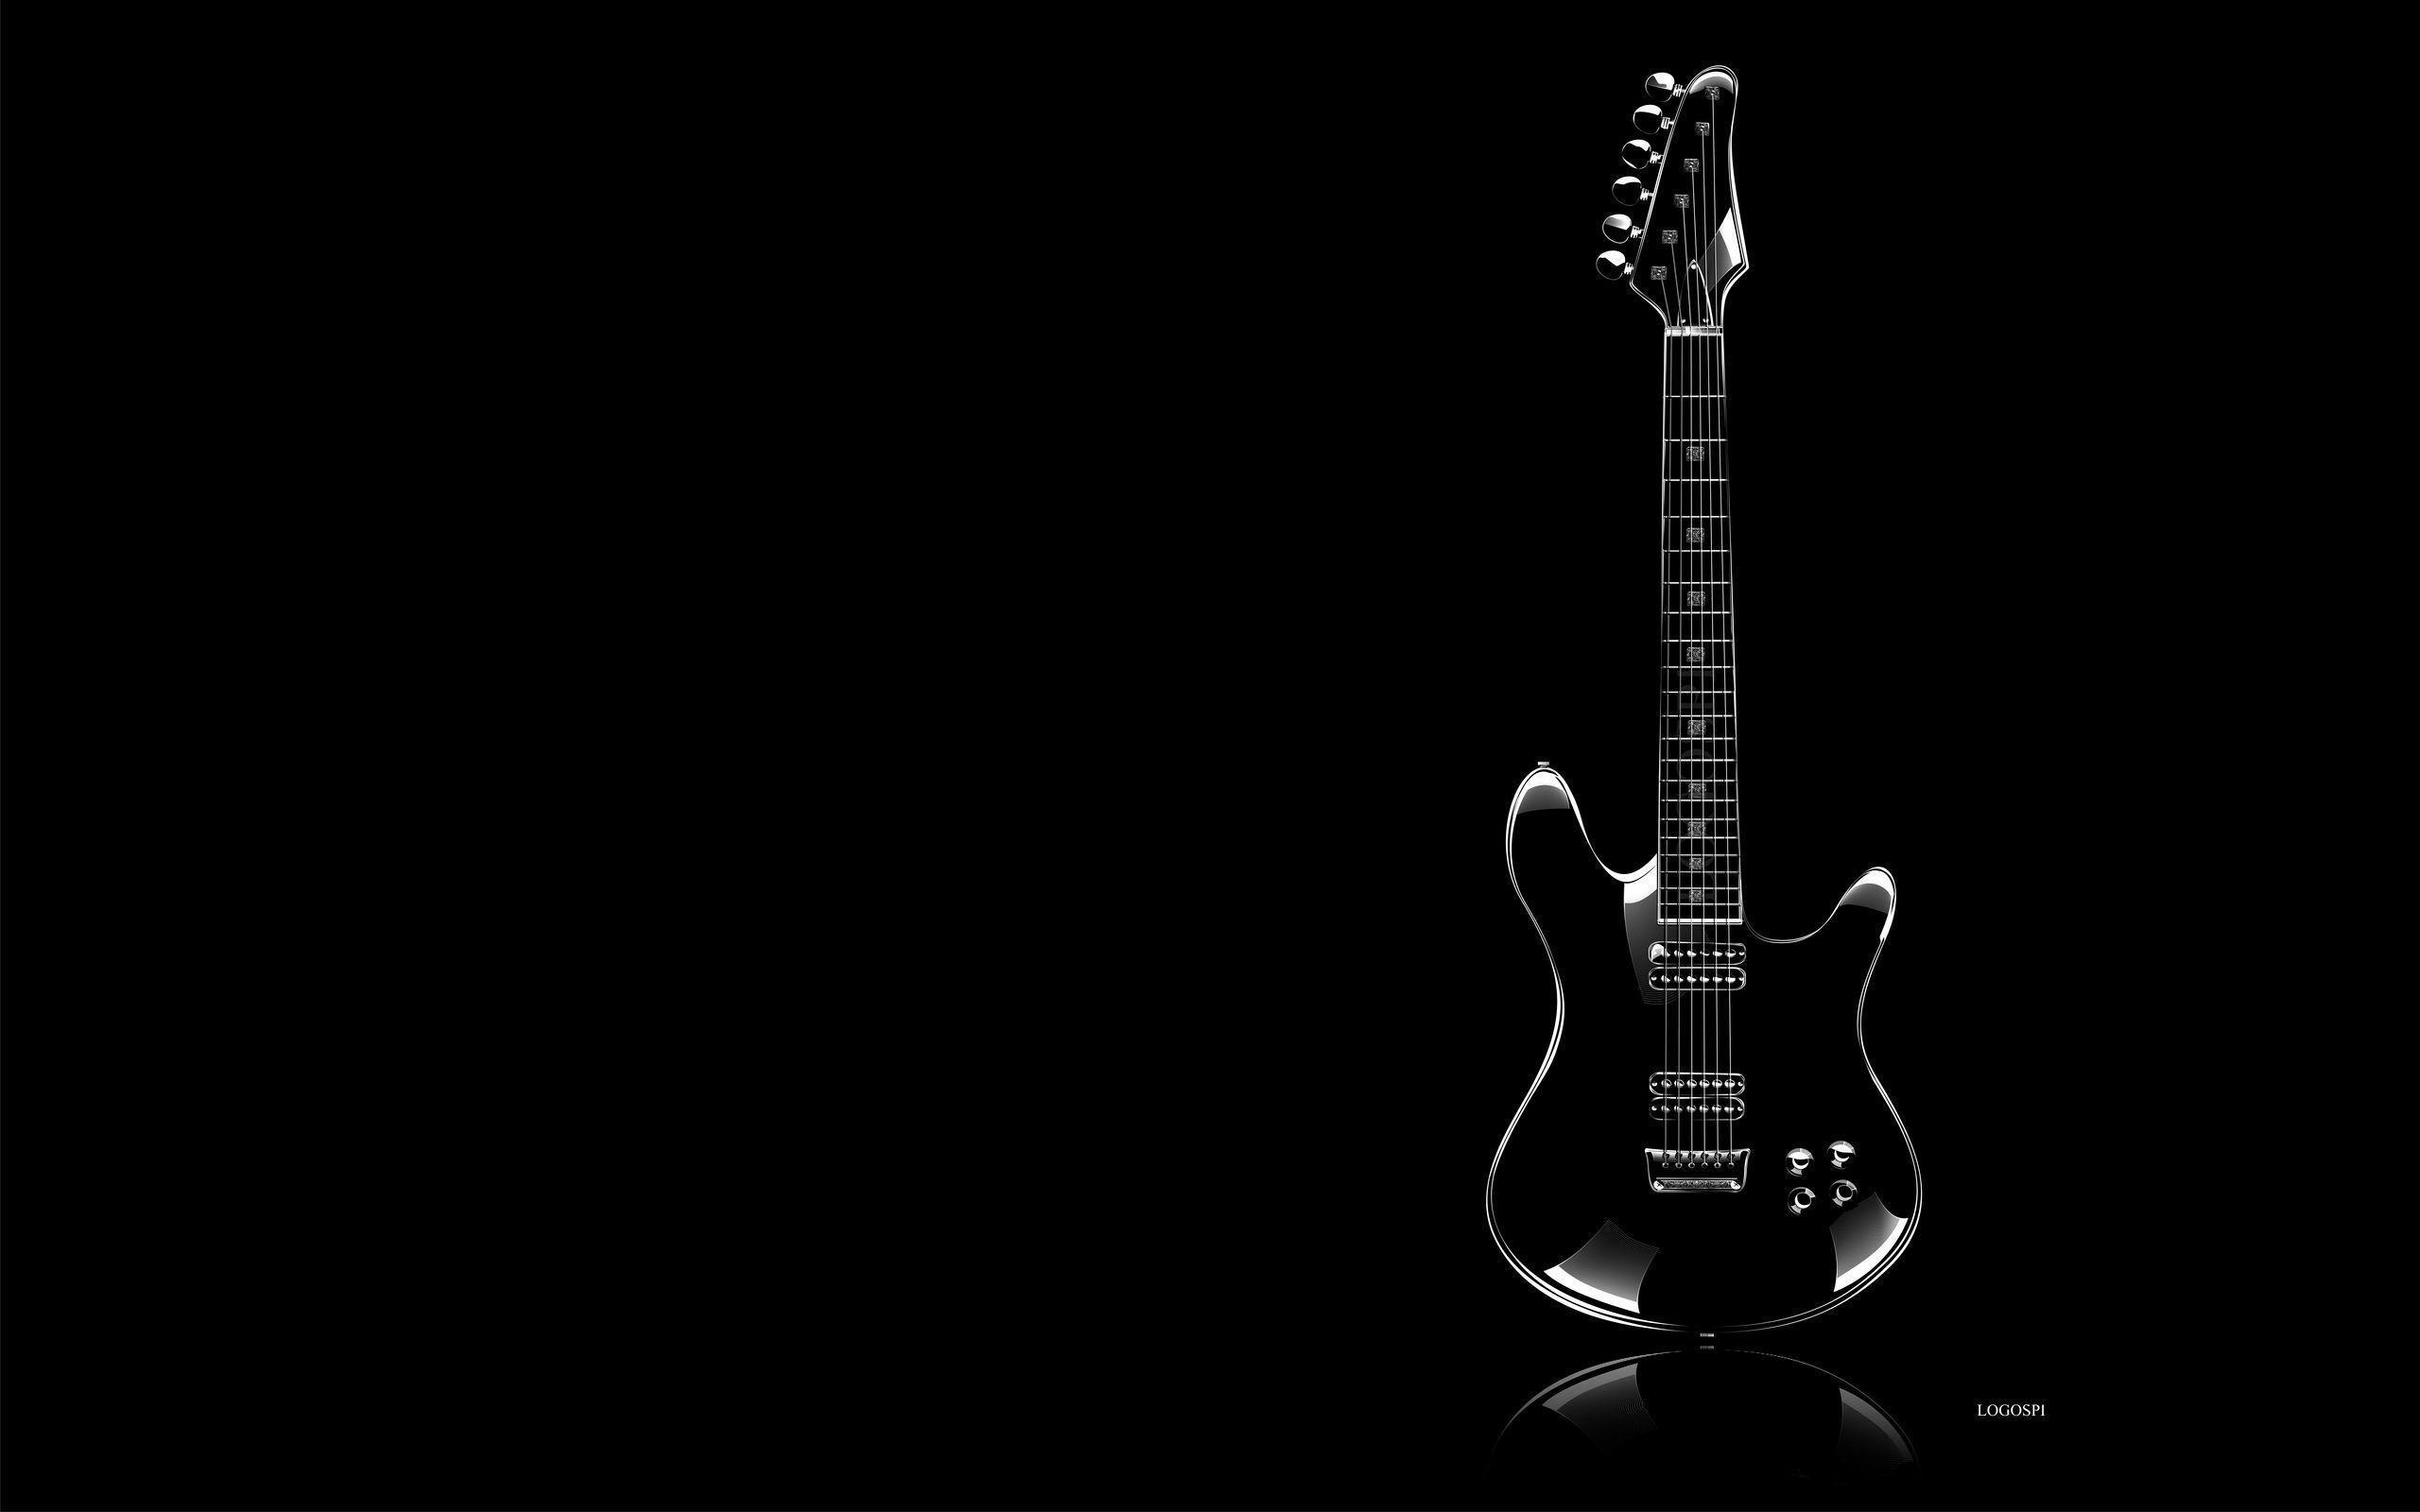 Guitar Black Backgrounds Wallpaper Cave